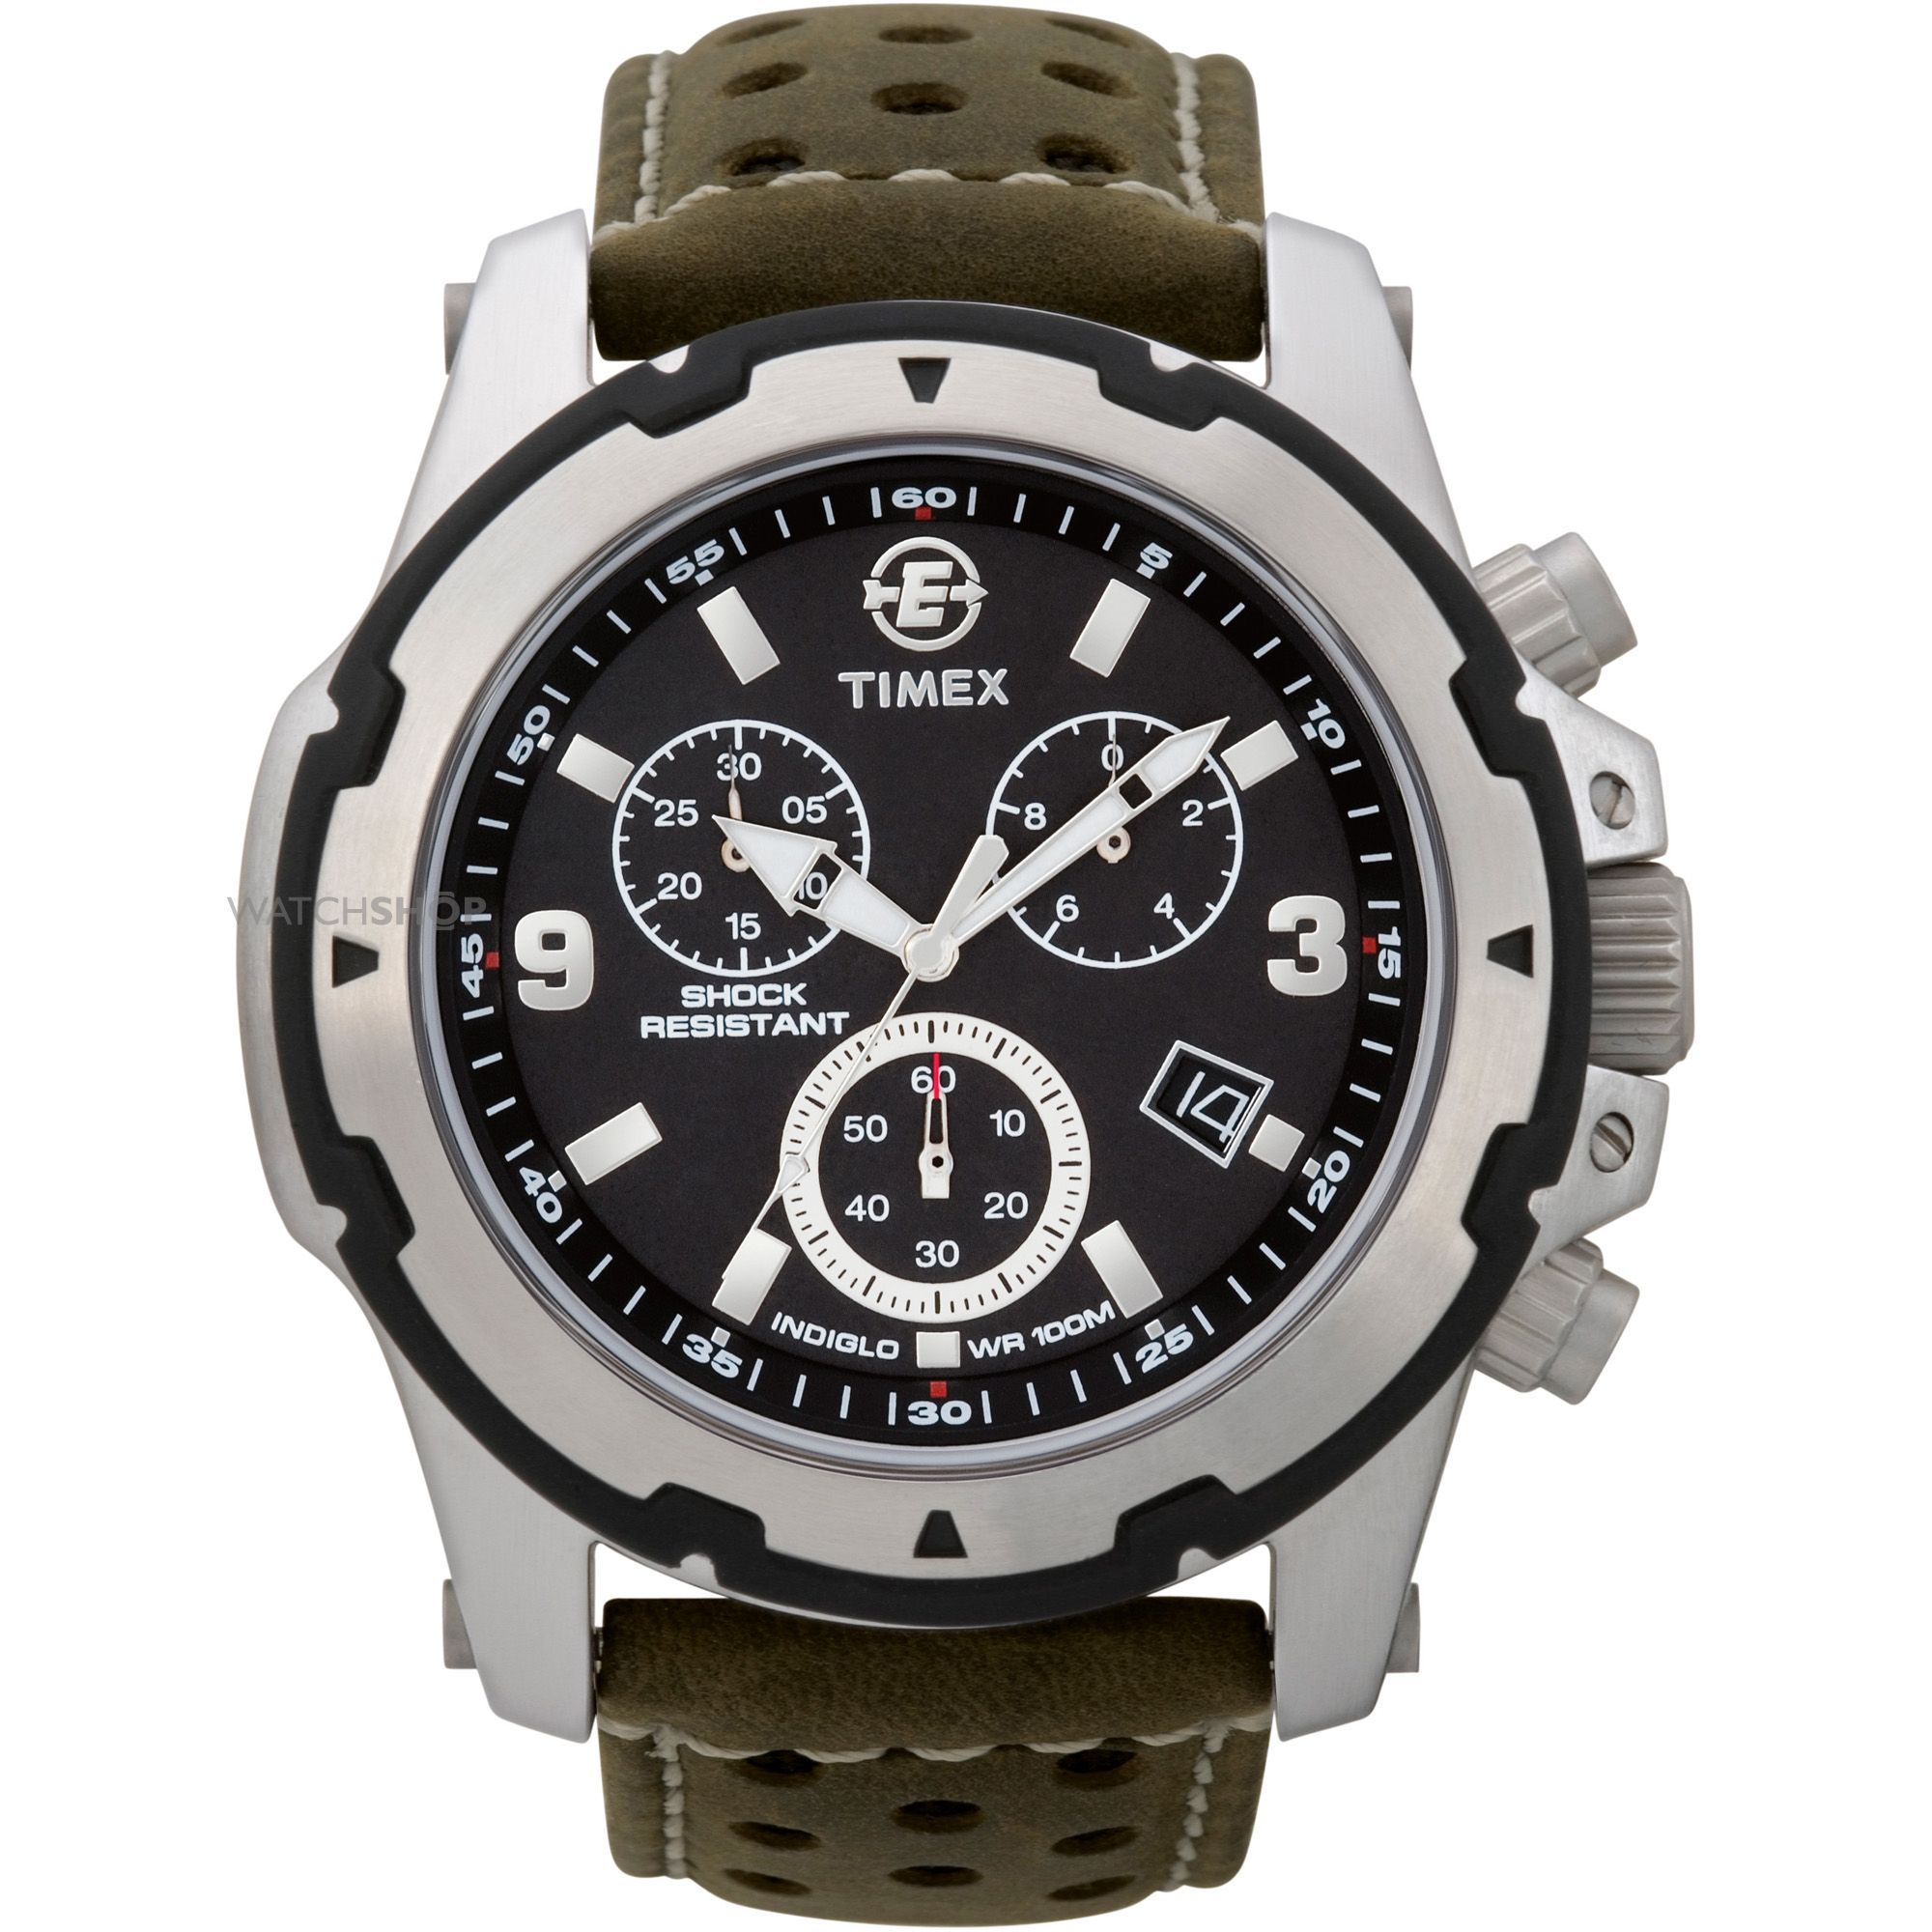 510ba066cfc1 Mens Timex Indiglo Expedition Rugged Field Chronograph Watch T49626